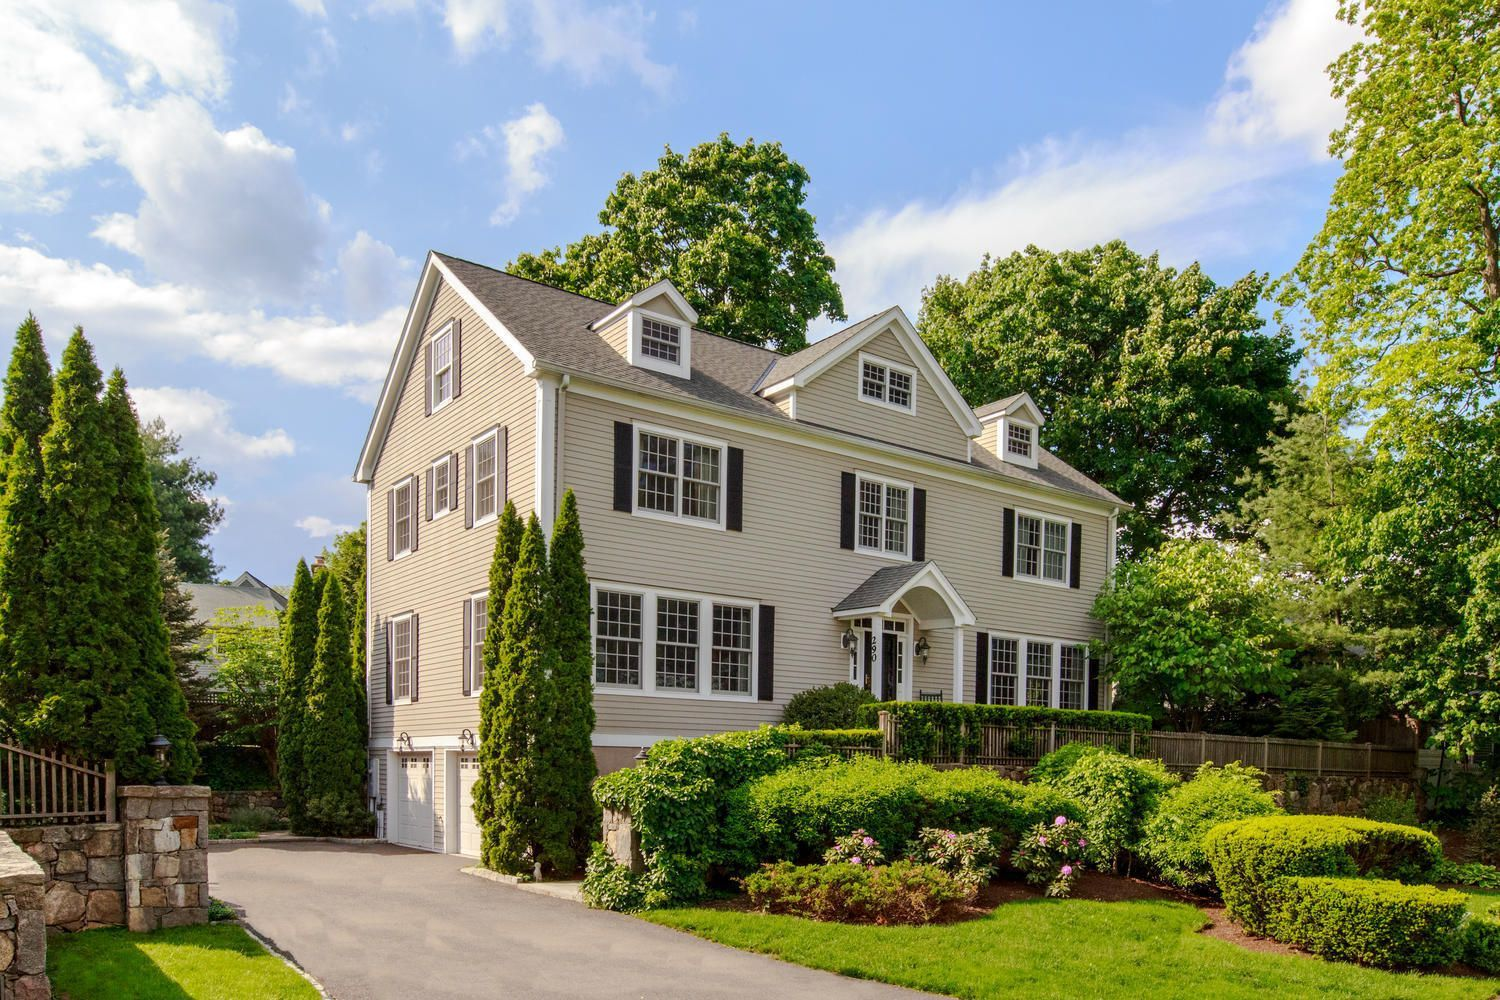 290 Main Street New Canaan, CT 06840 - Image 1